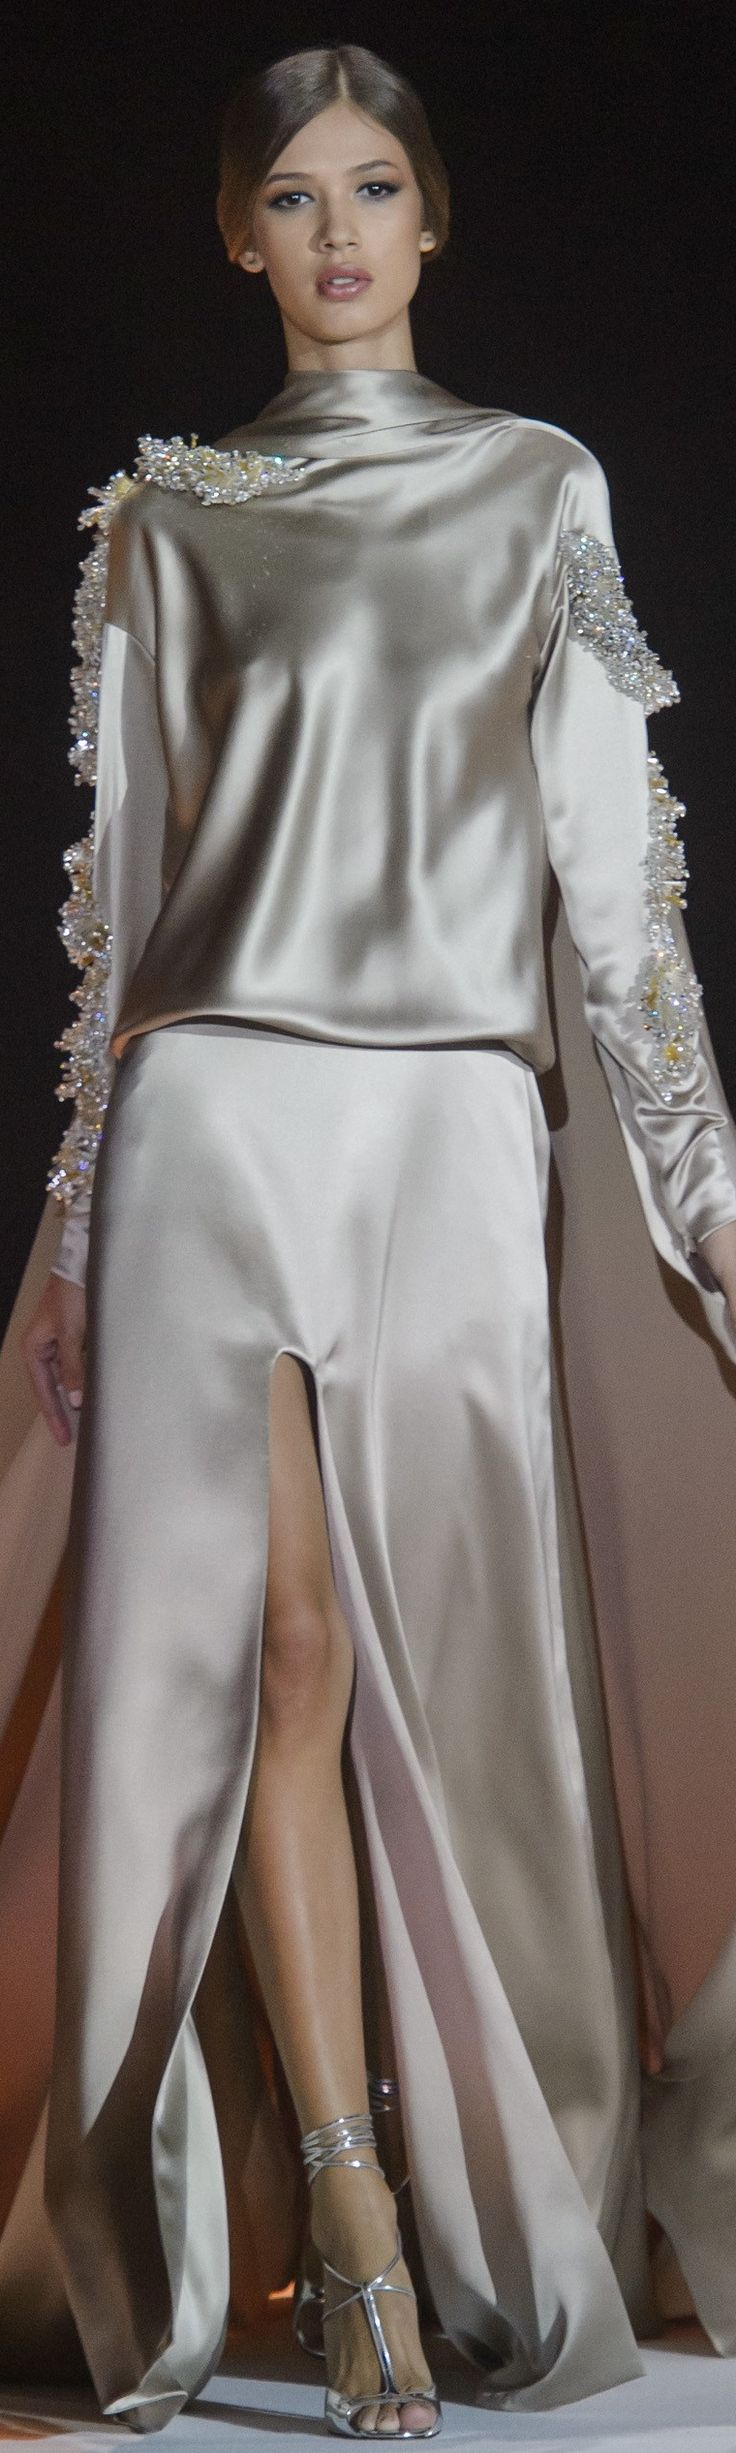 Stephane Rolland Spring 2018 Couture I would so wear this as my wedding gown